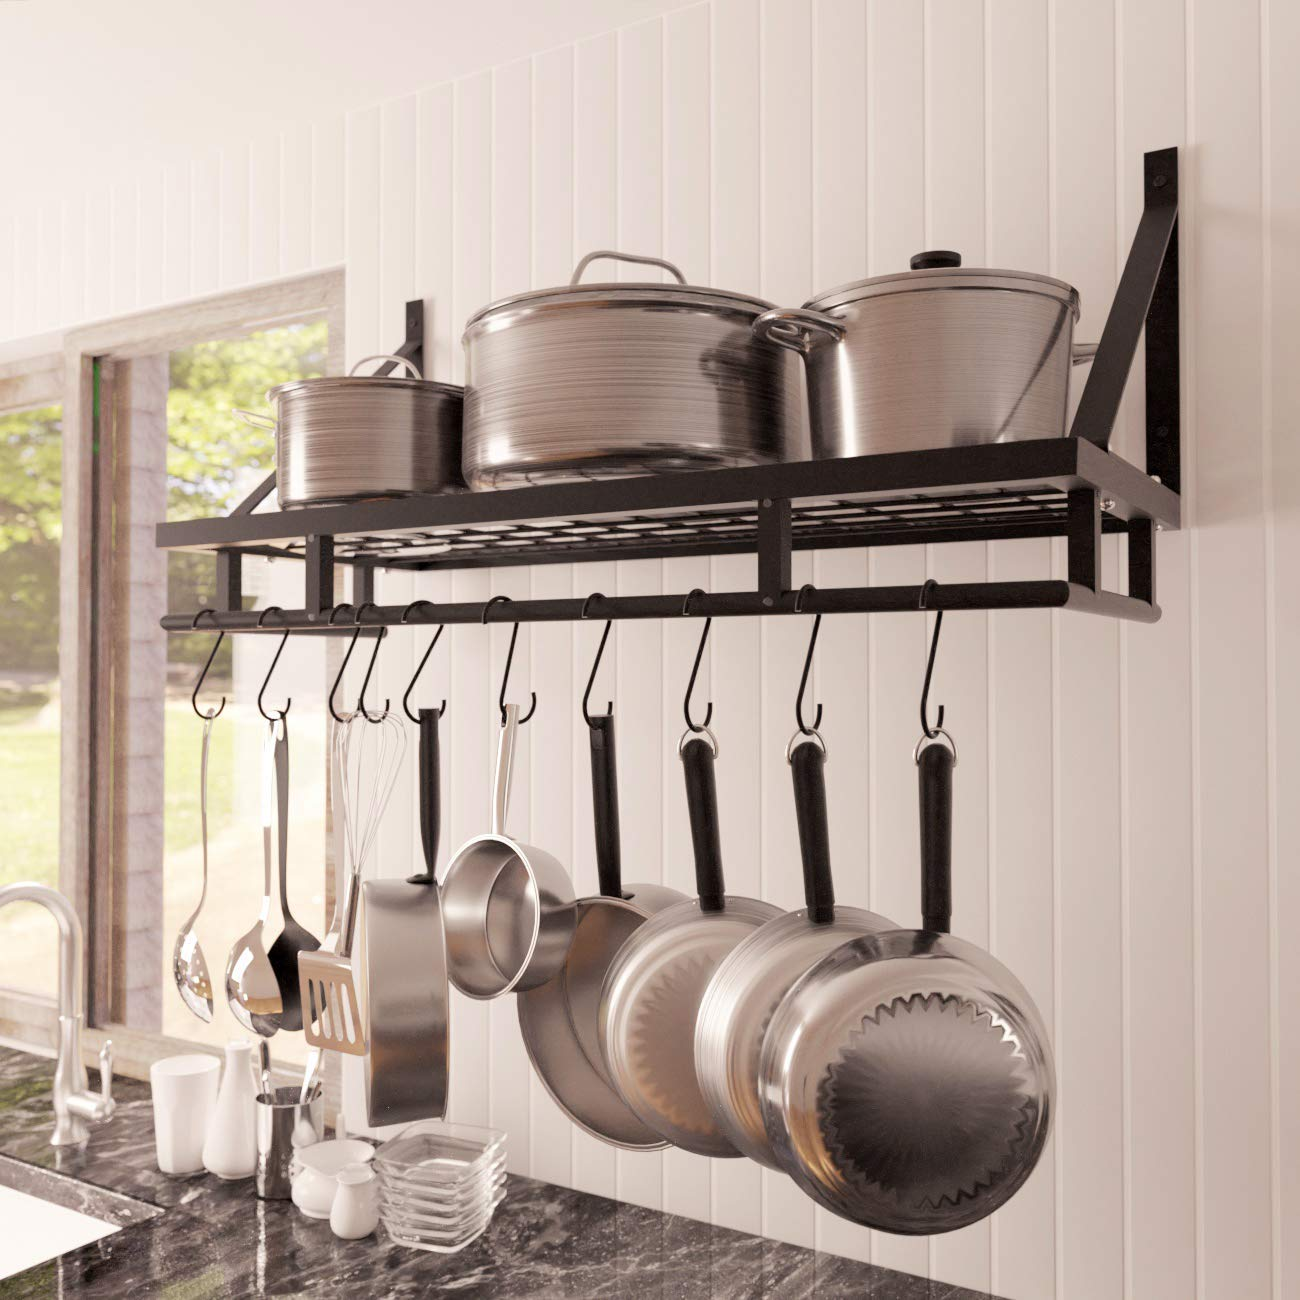 Kes 30-Inch Kitchen Pan Pot Rack Wall Mounted Hanging Storage Organizer Wall Shelf with 12 Hooks Matte Black, KUR215S75A-BK